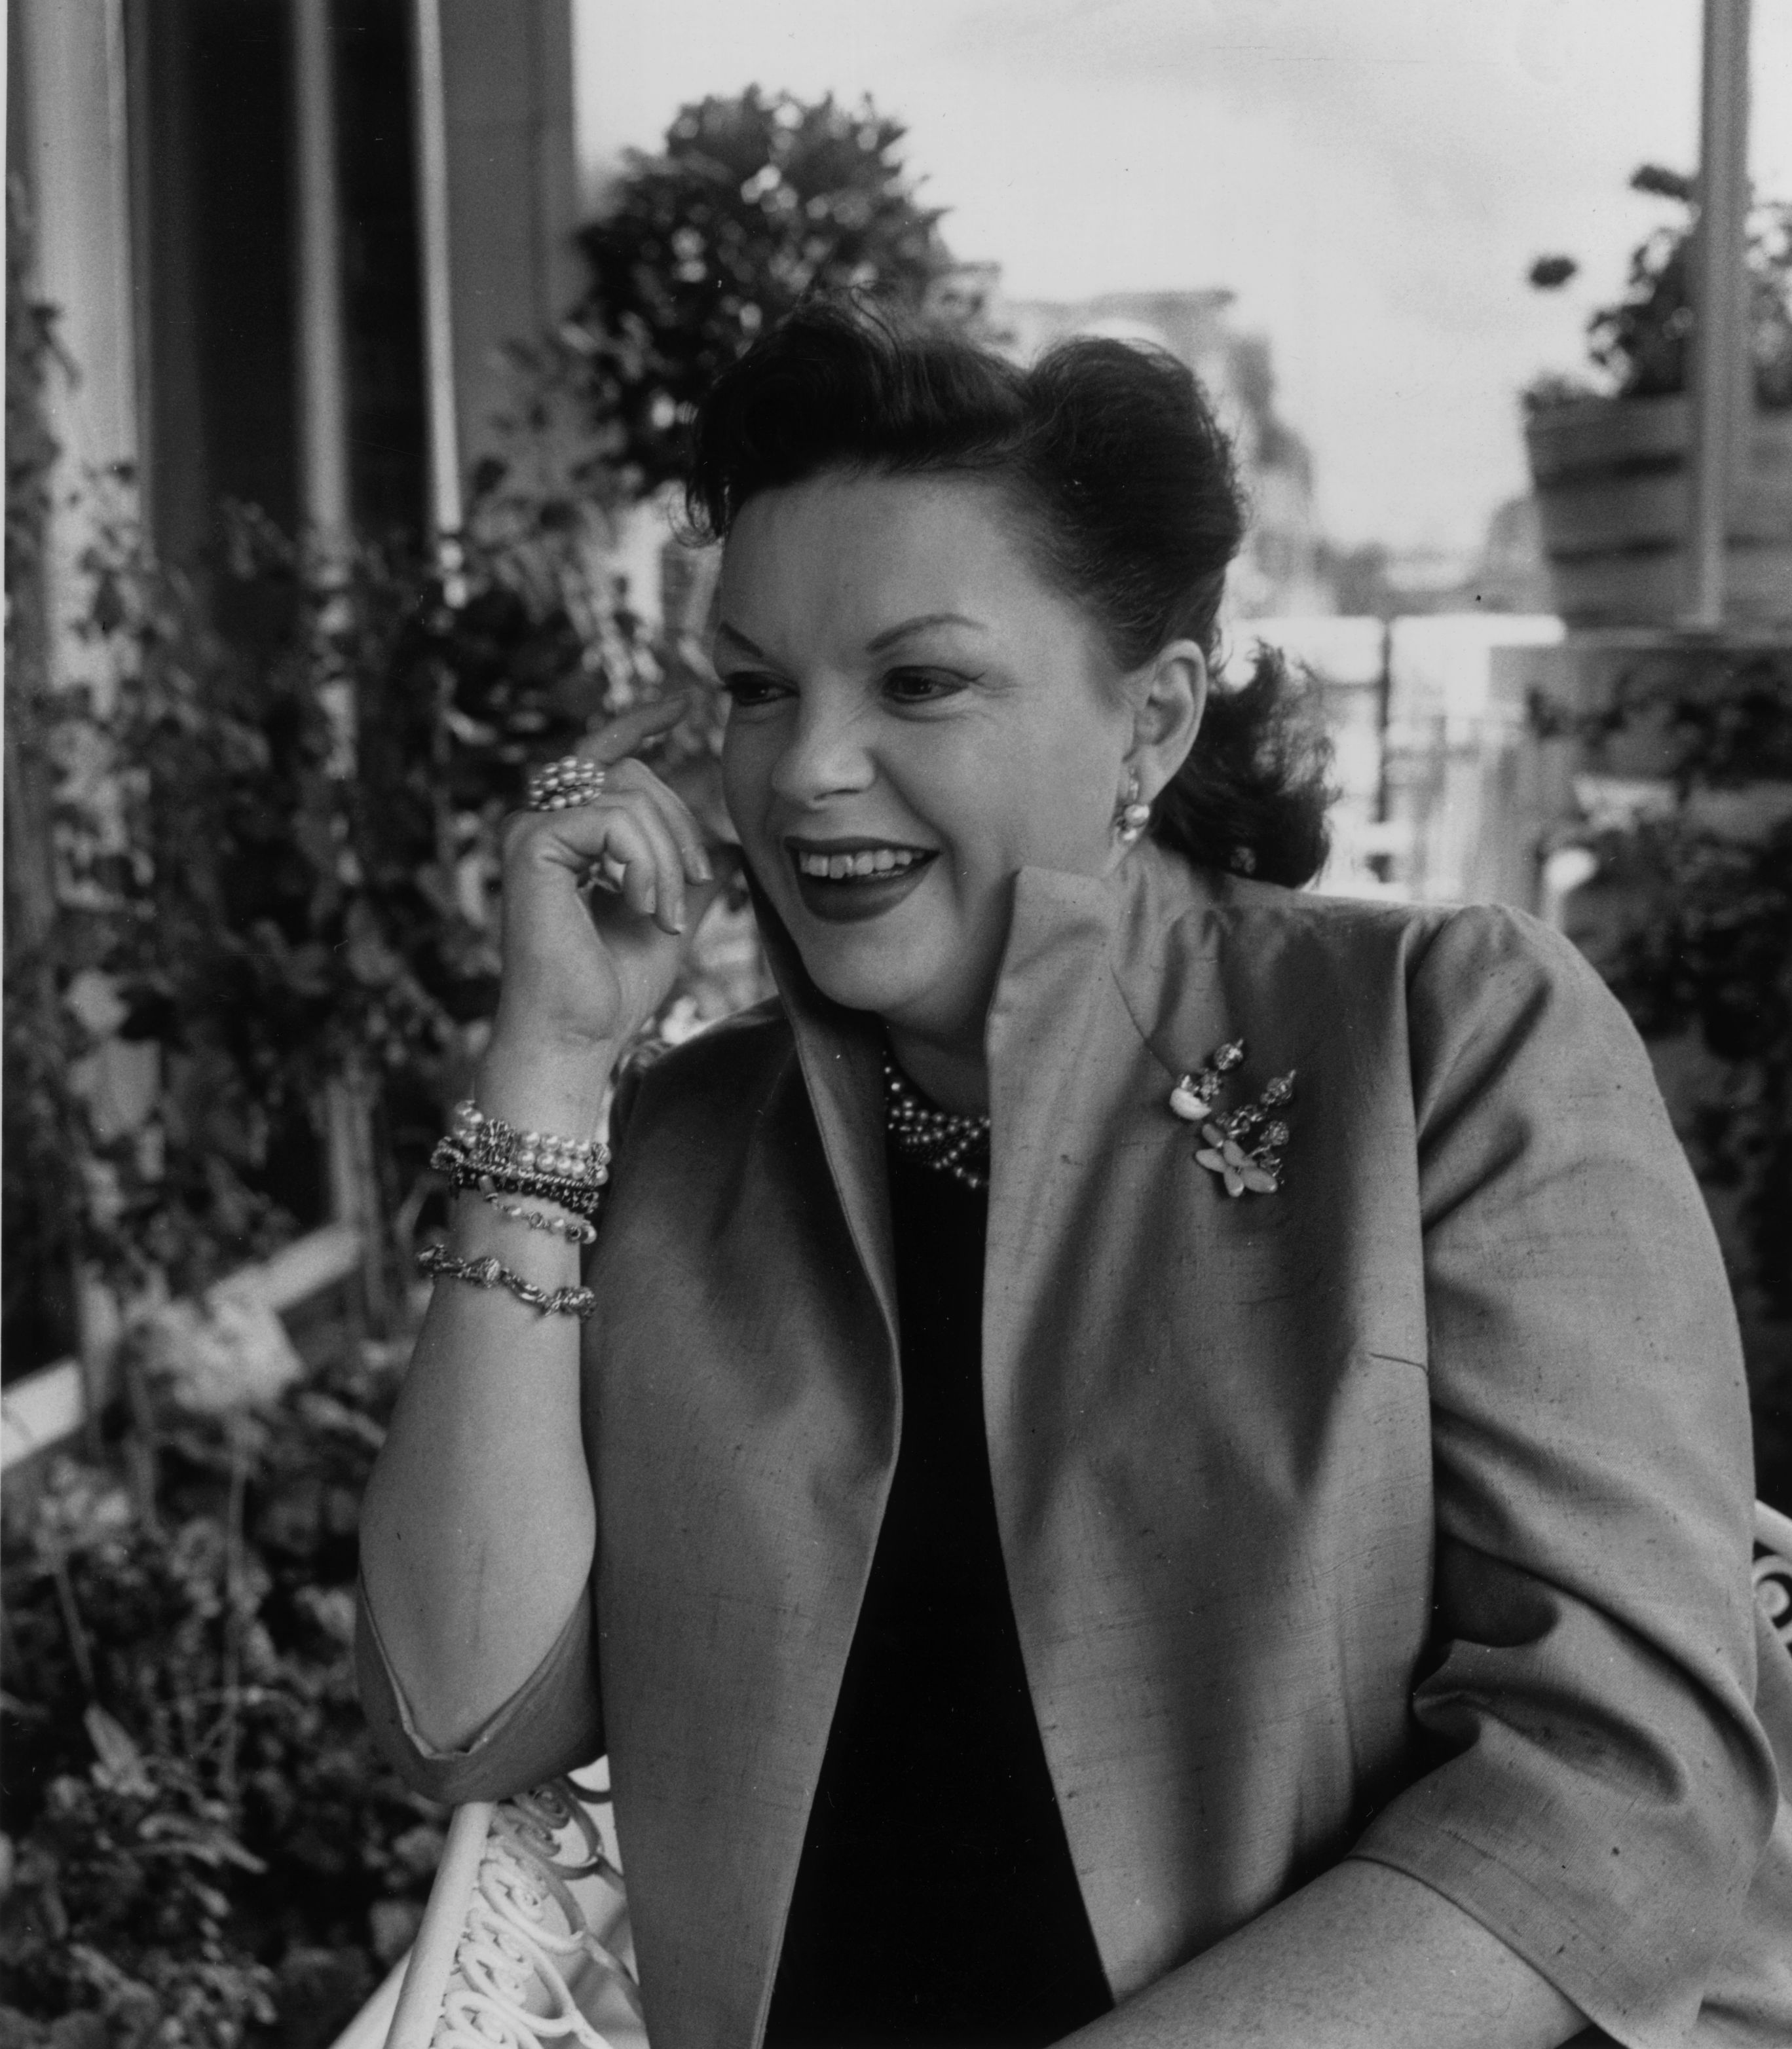 Judy Garland (1922 - 1969) at the Mayfair Hotel, London on August 29, 1960. | Source: Getty Images